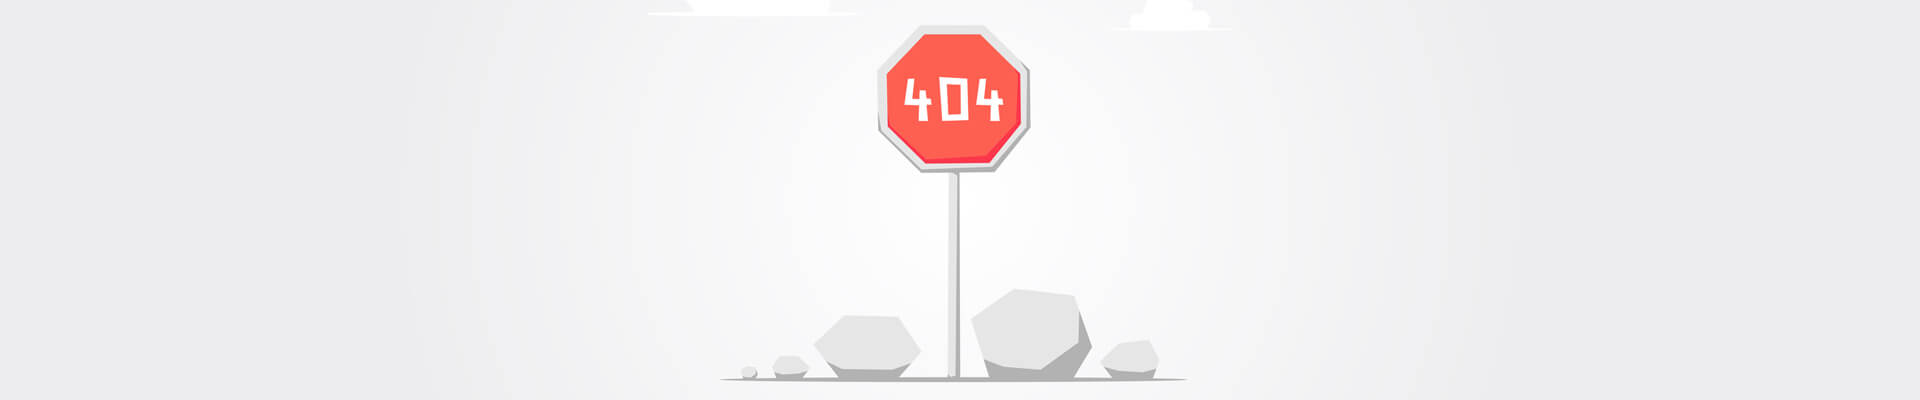 404 on stop sign board